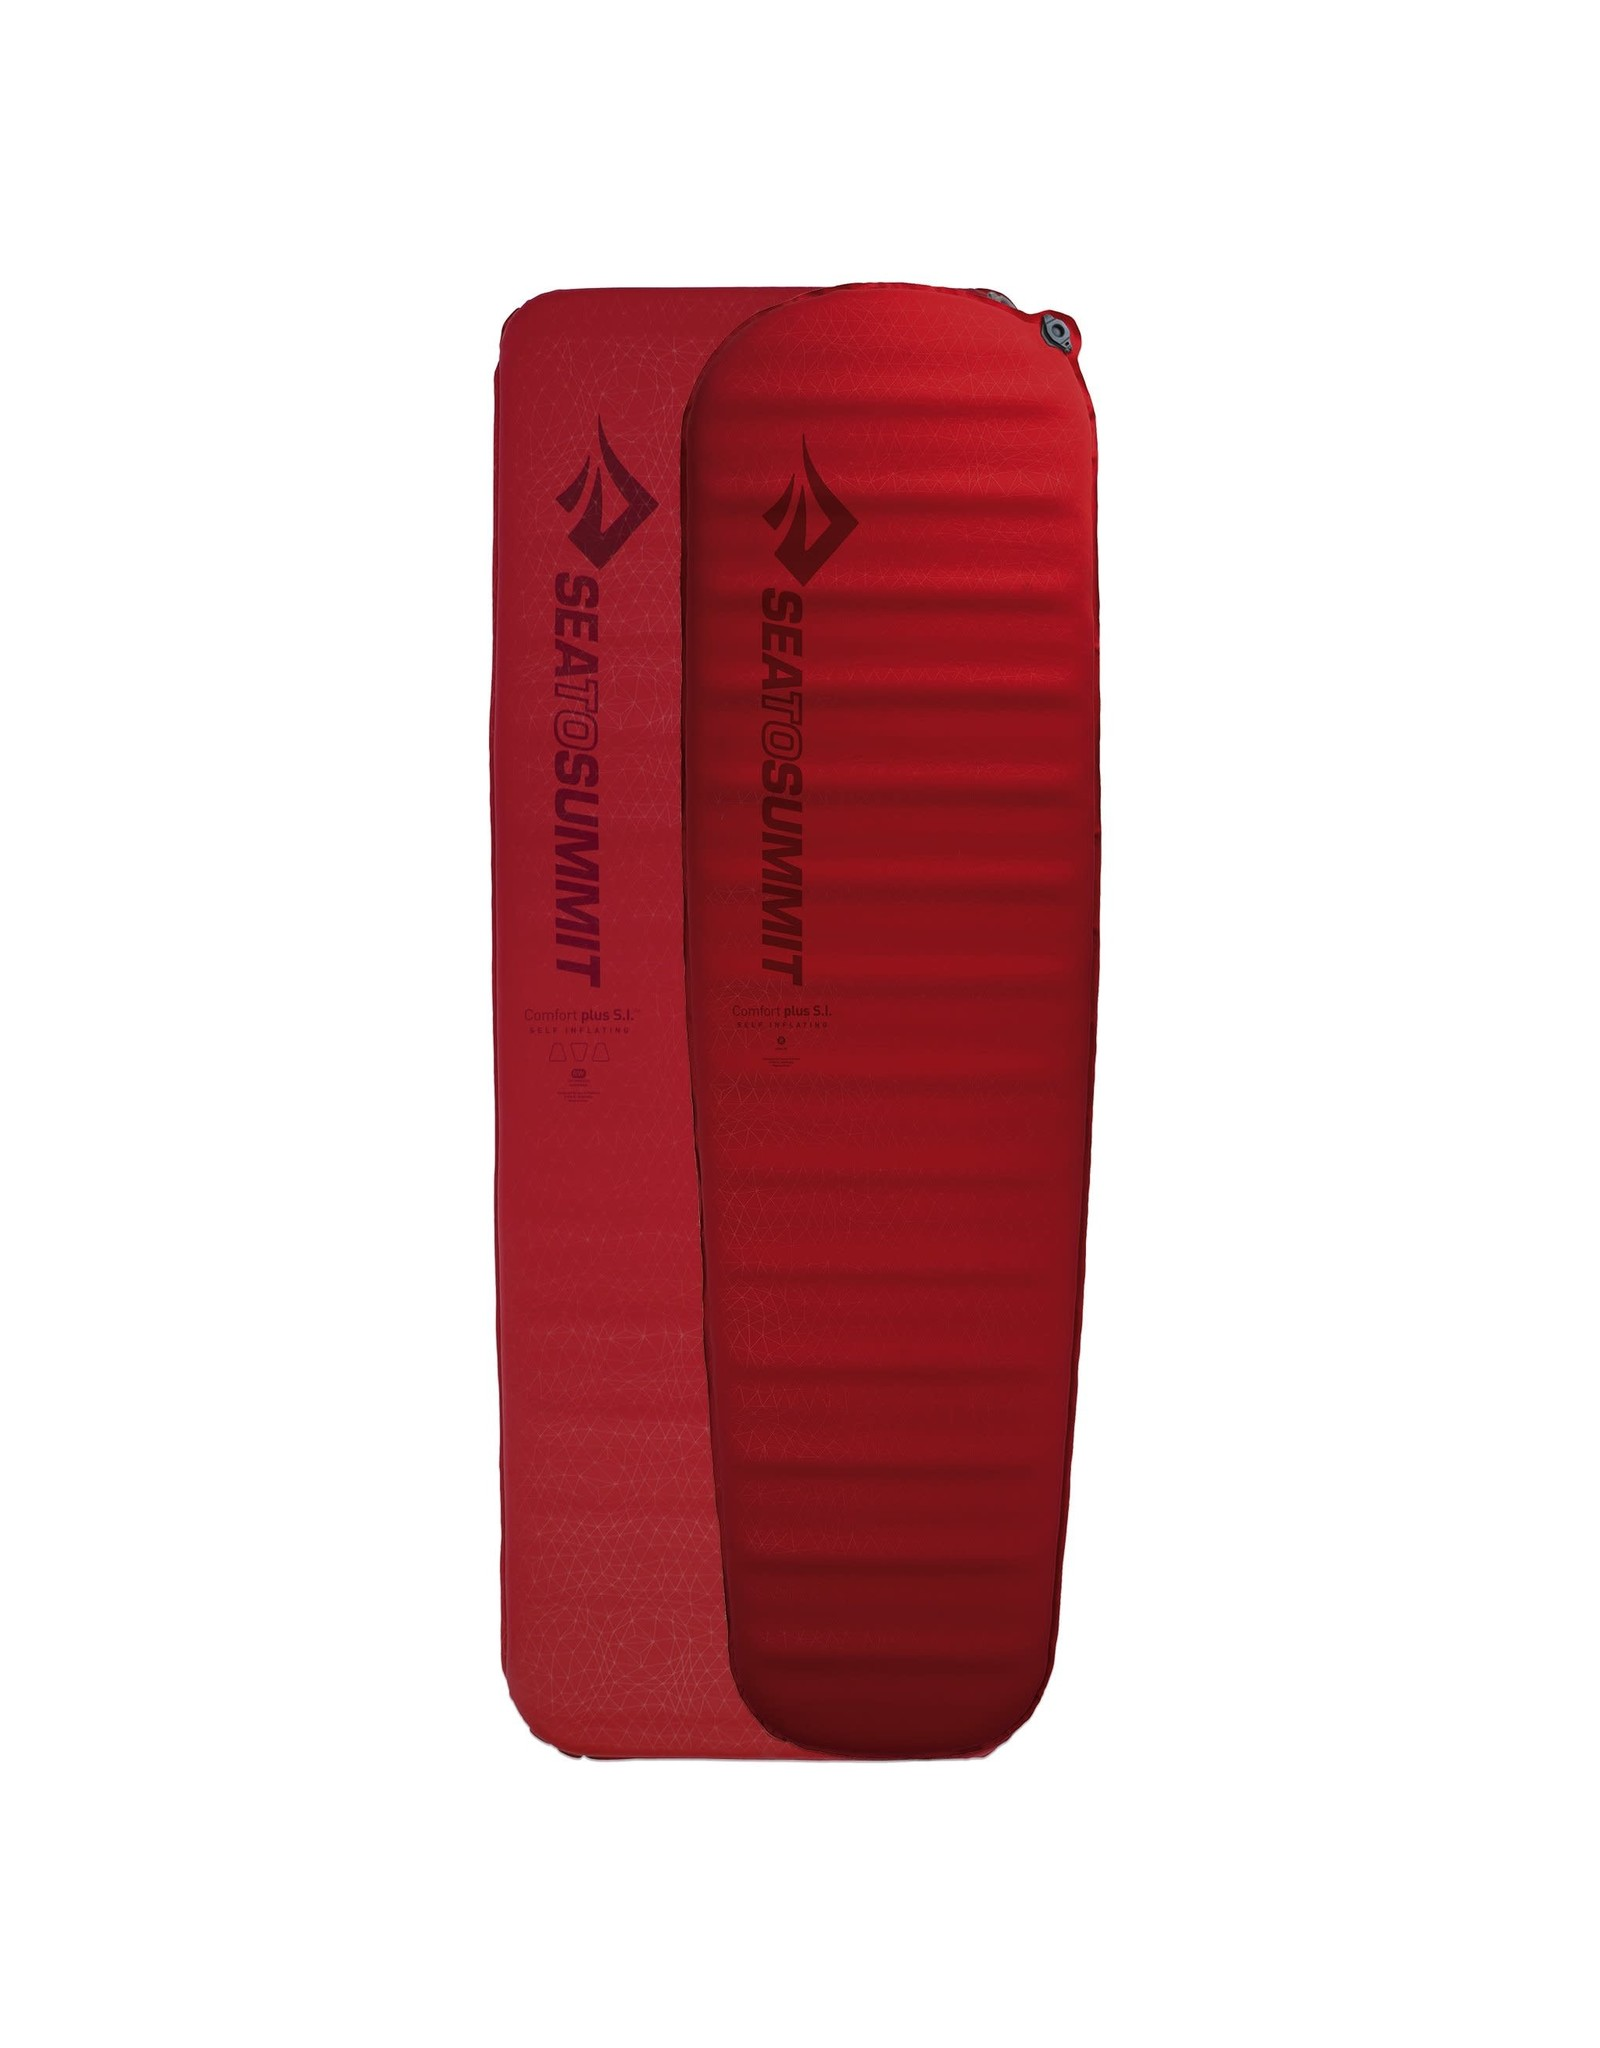 Sea to Summit Comfort Plus SI Mat - Rectangular Regular Wide